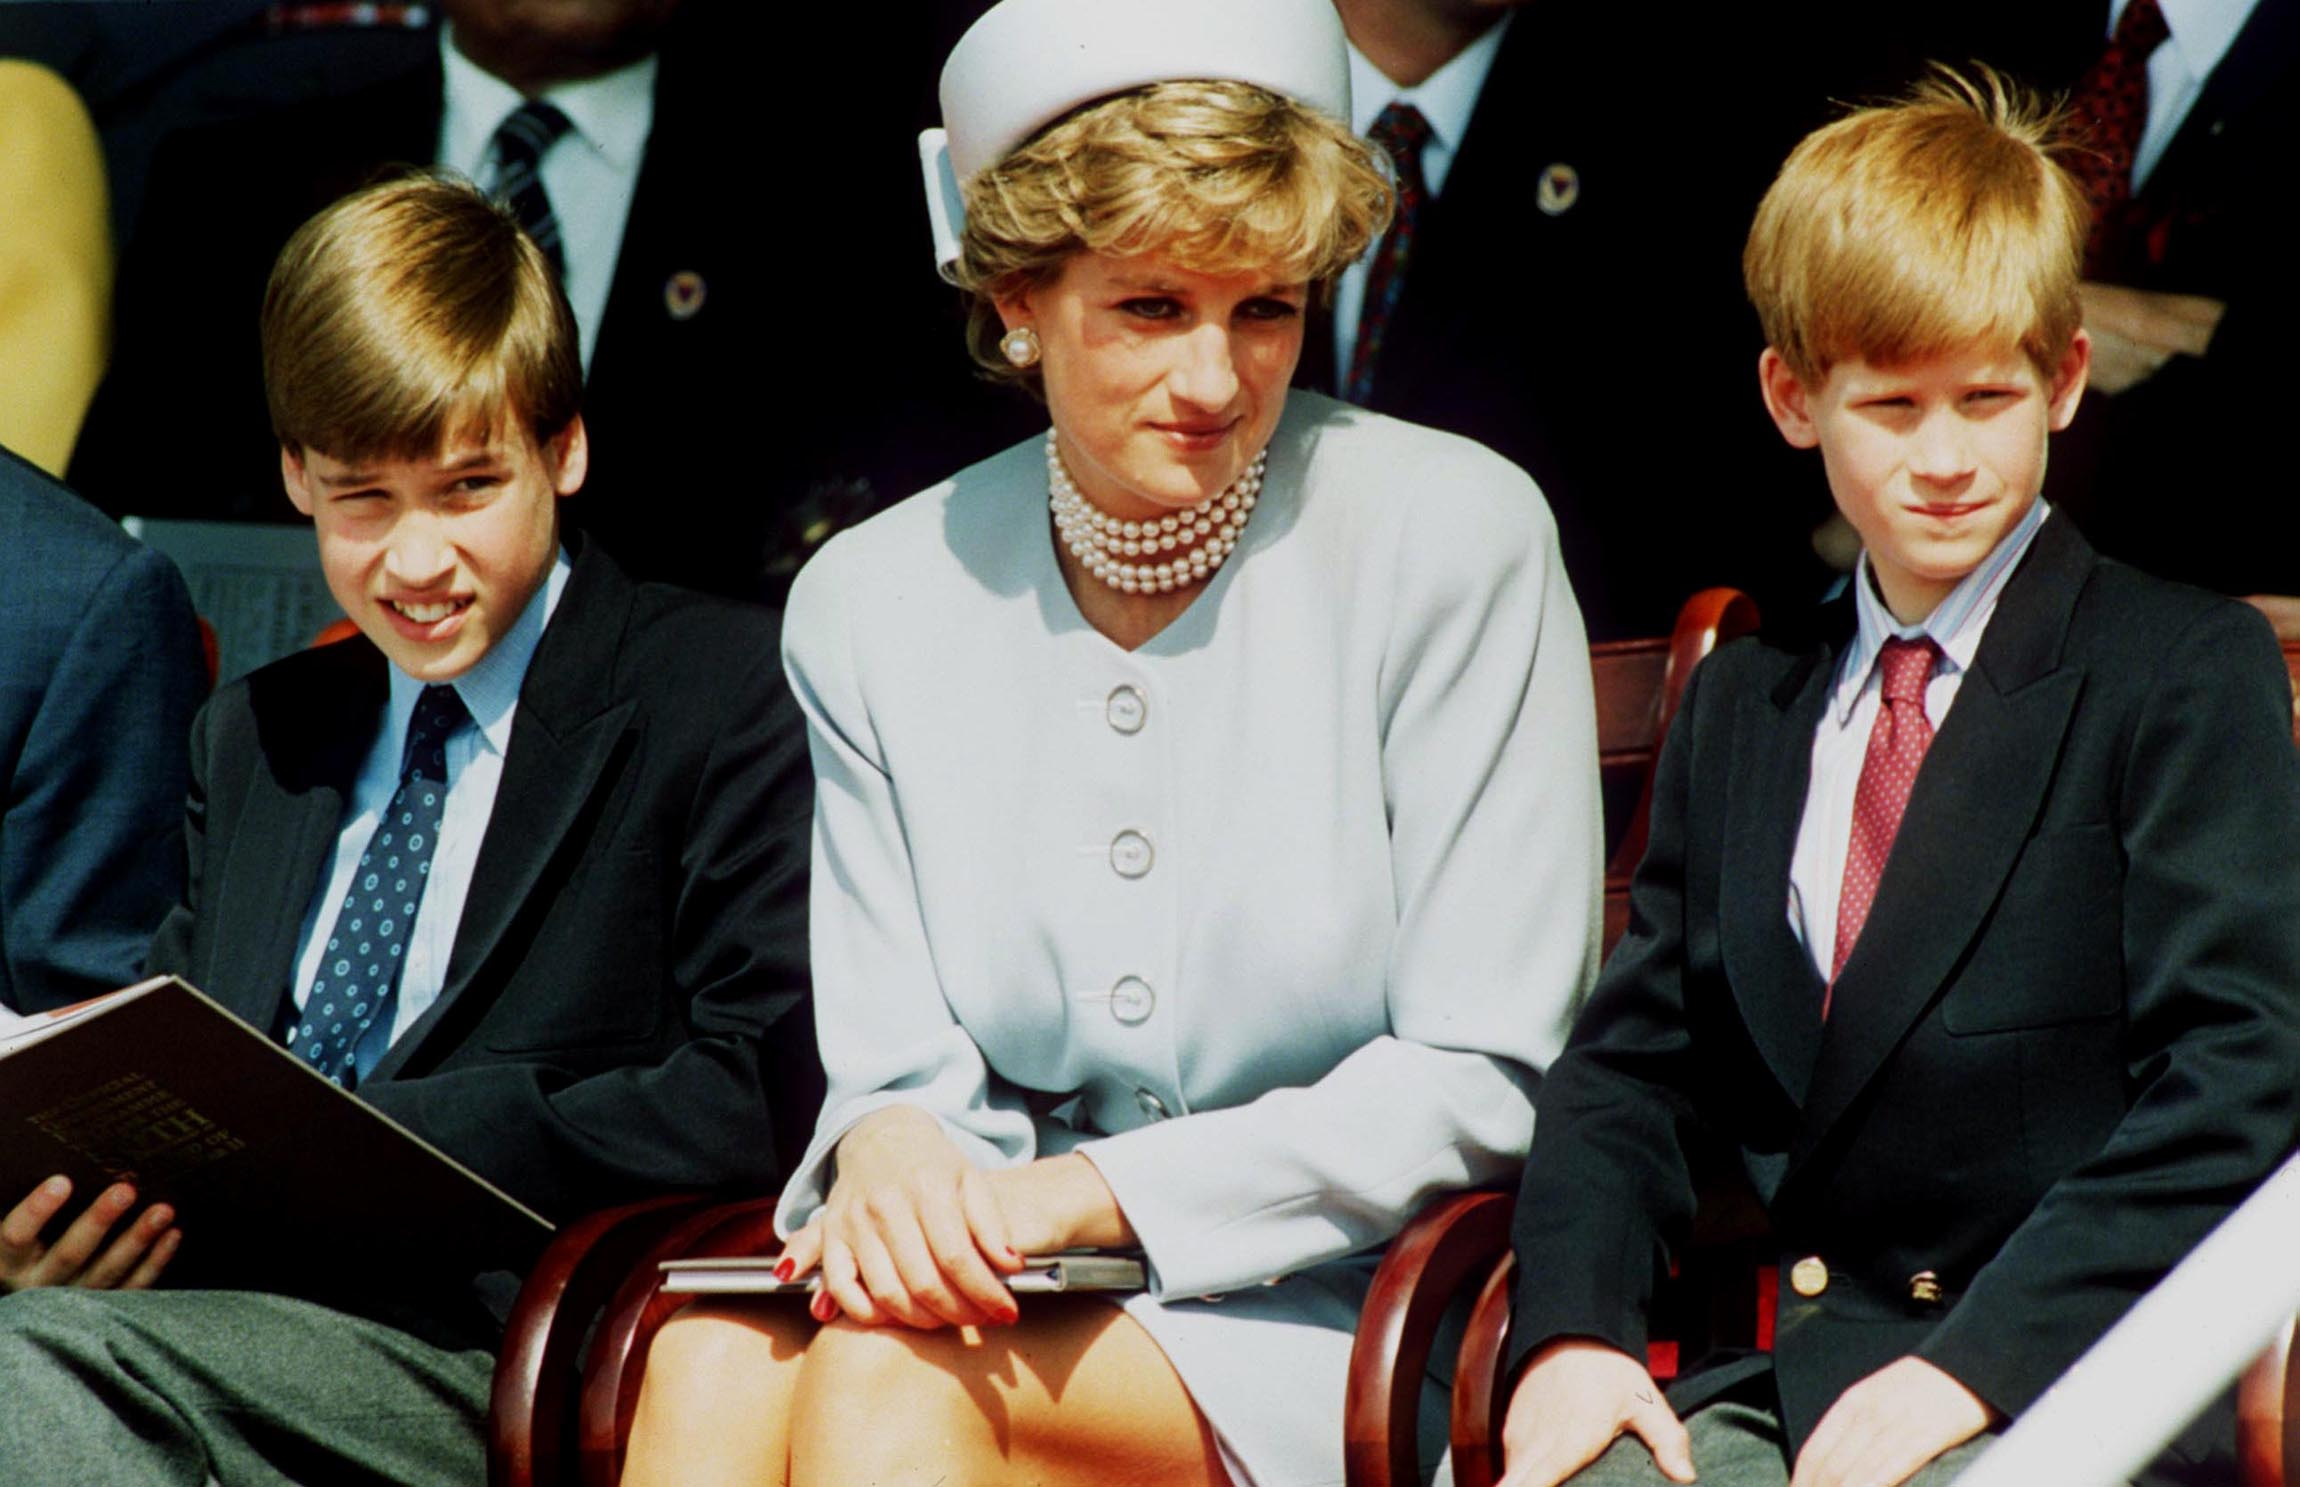 Princess Diana with her sons Prince William and Prince Harry attend the Heads of State VE Remembrance Service in Hyde Park on May 7, 1995 in London, England.   Getty Images